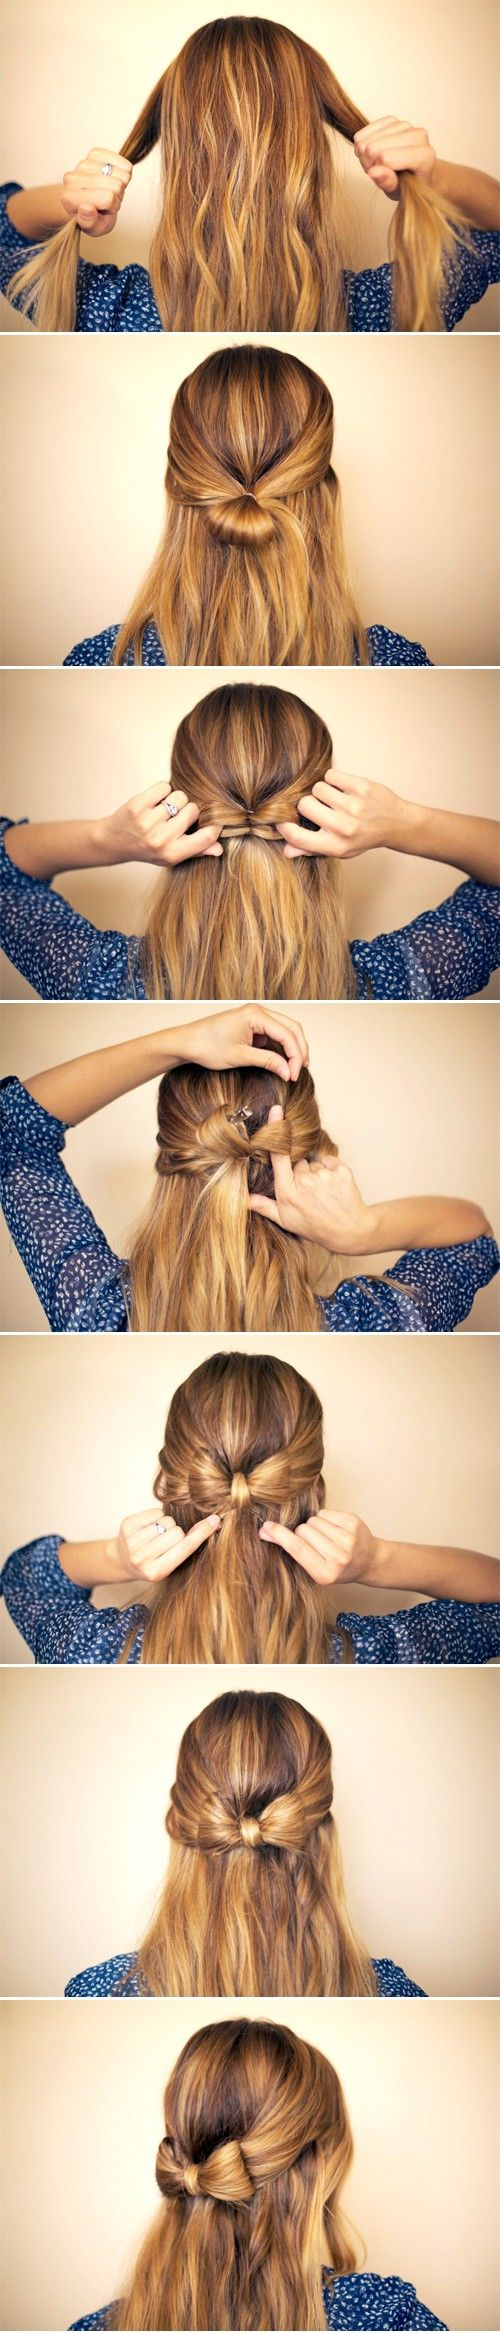 I could see you doing this @Victoria OwensHairbows, Bows Ties, Bows Tutorials, Hair Tutorial, Long Hair, Bows Hairstyles, Cute Hair, Hair Bows, Hair Style